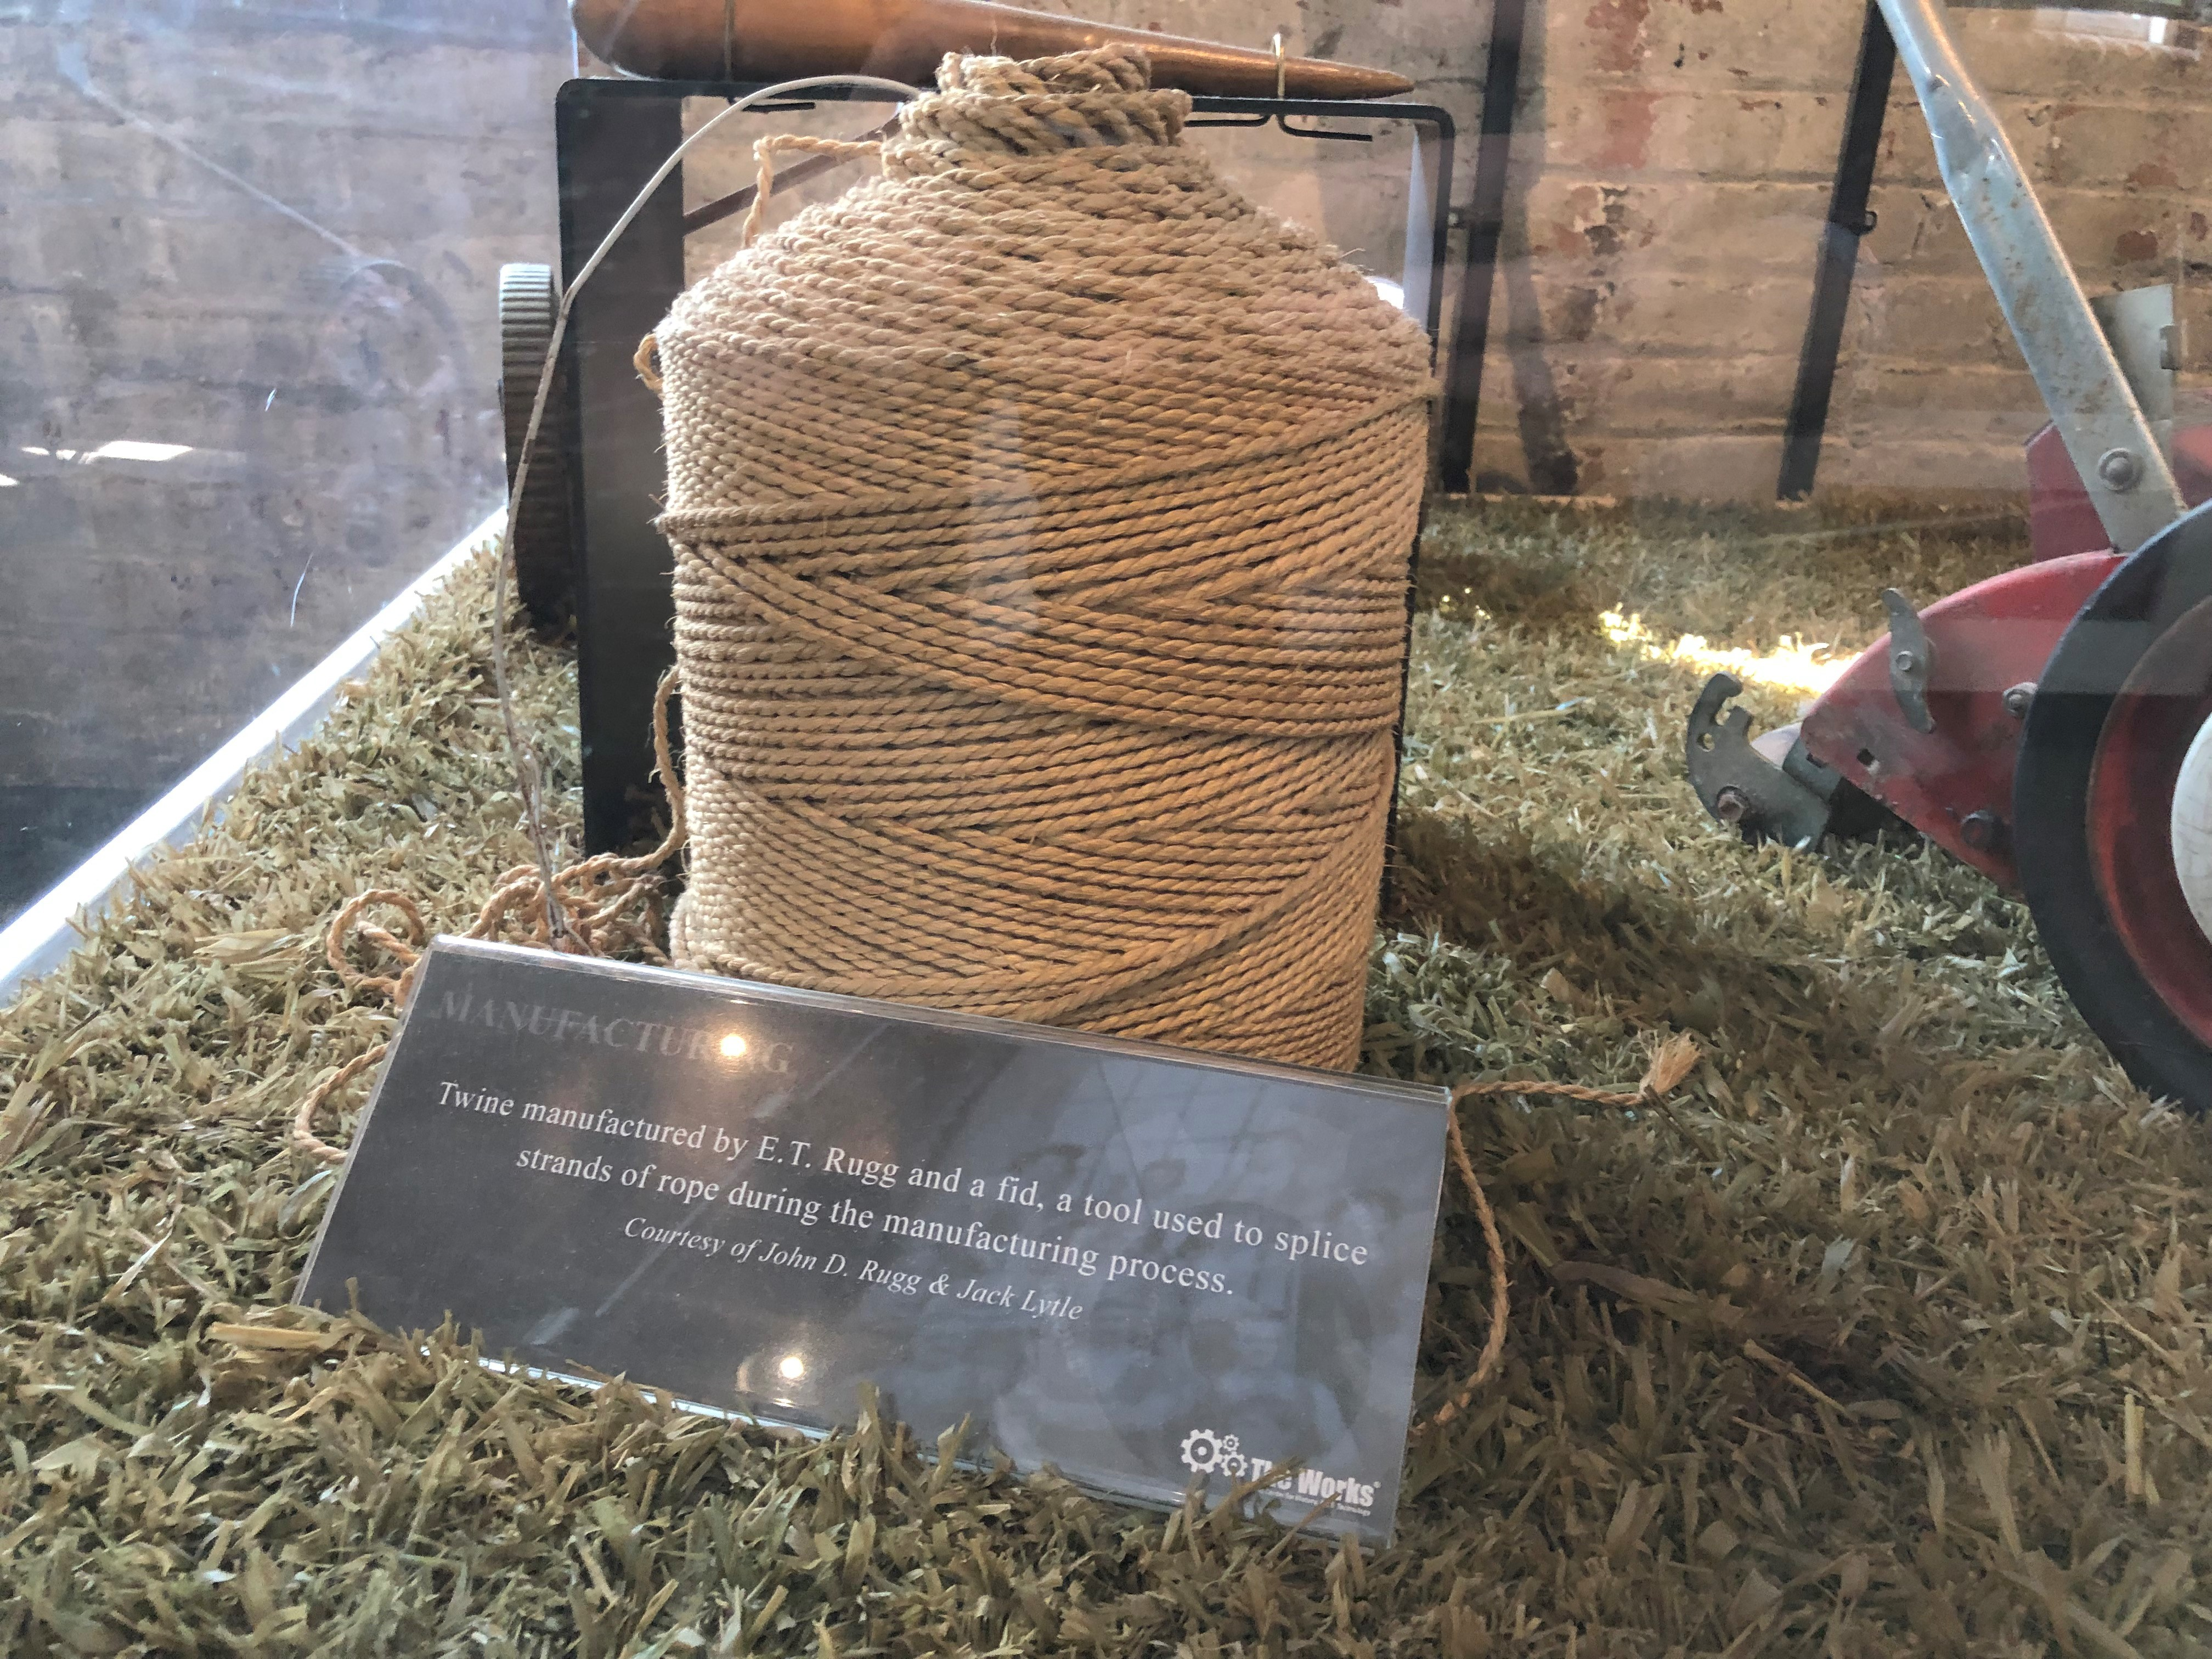 Rope produced by E.T. Rugg Company.